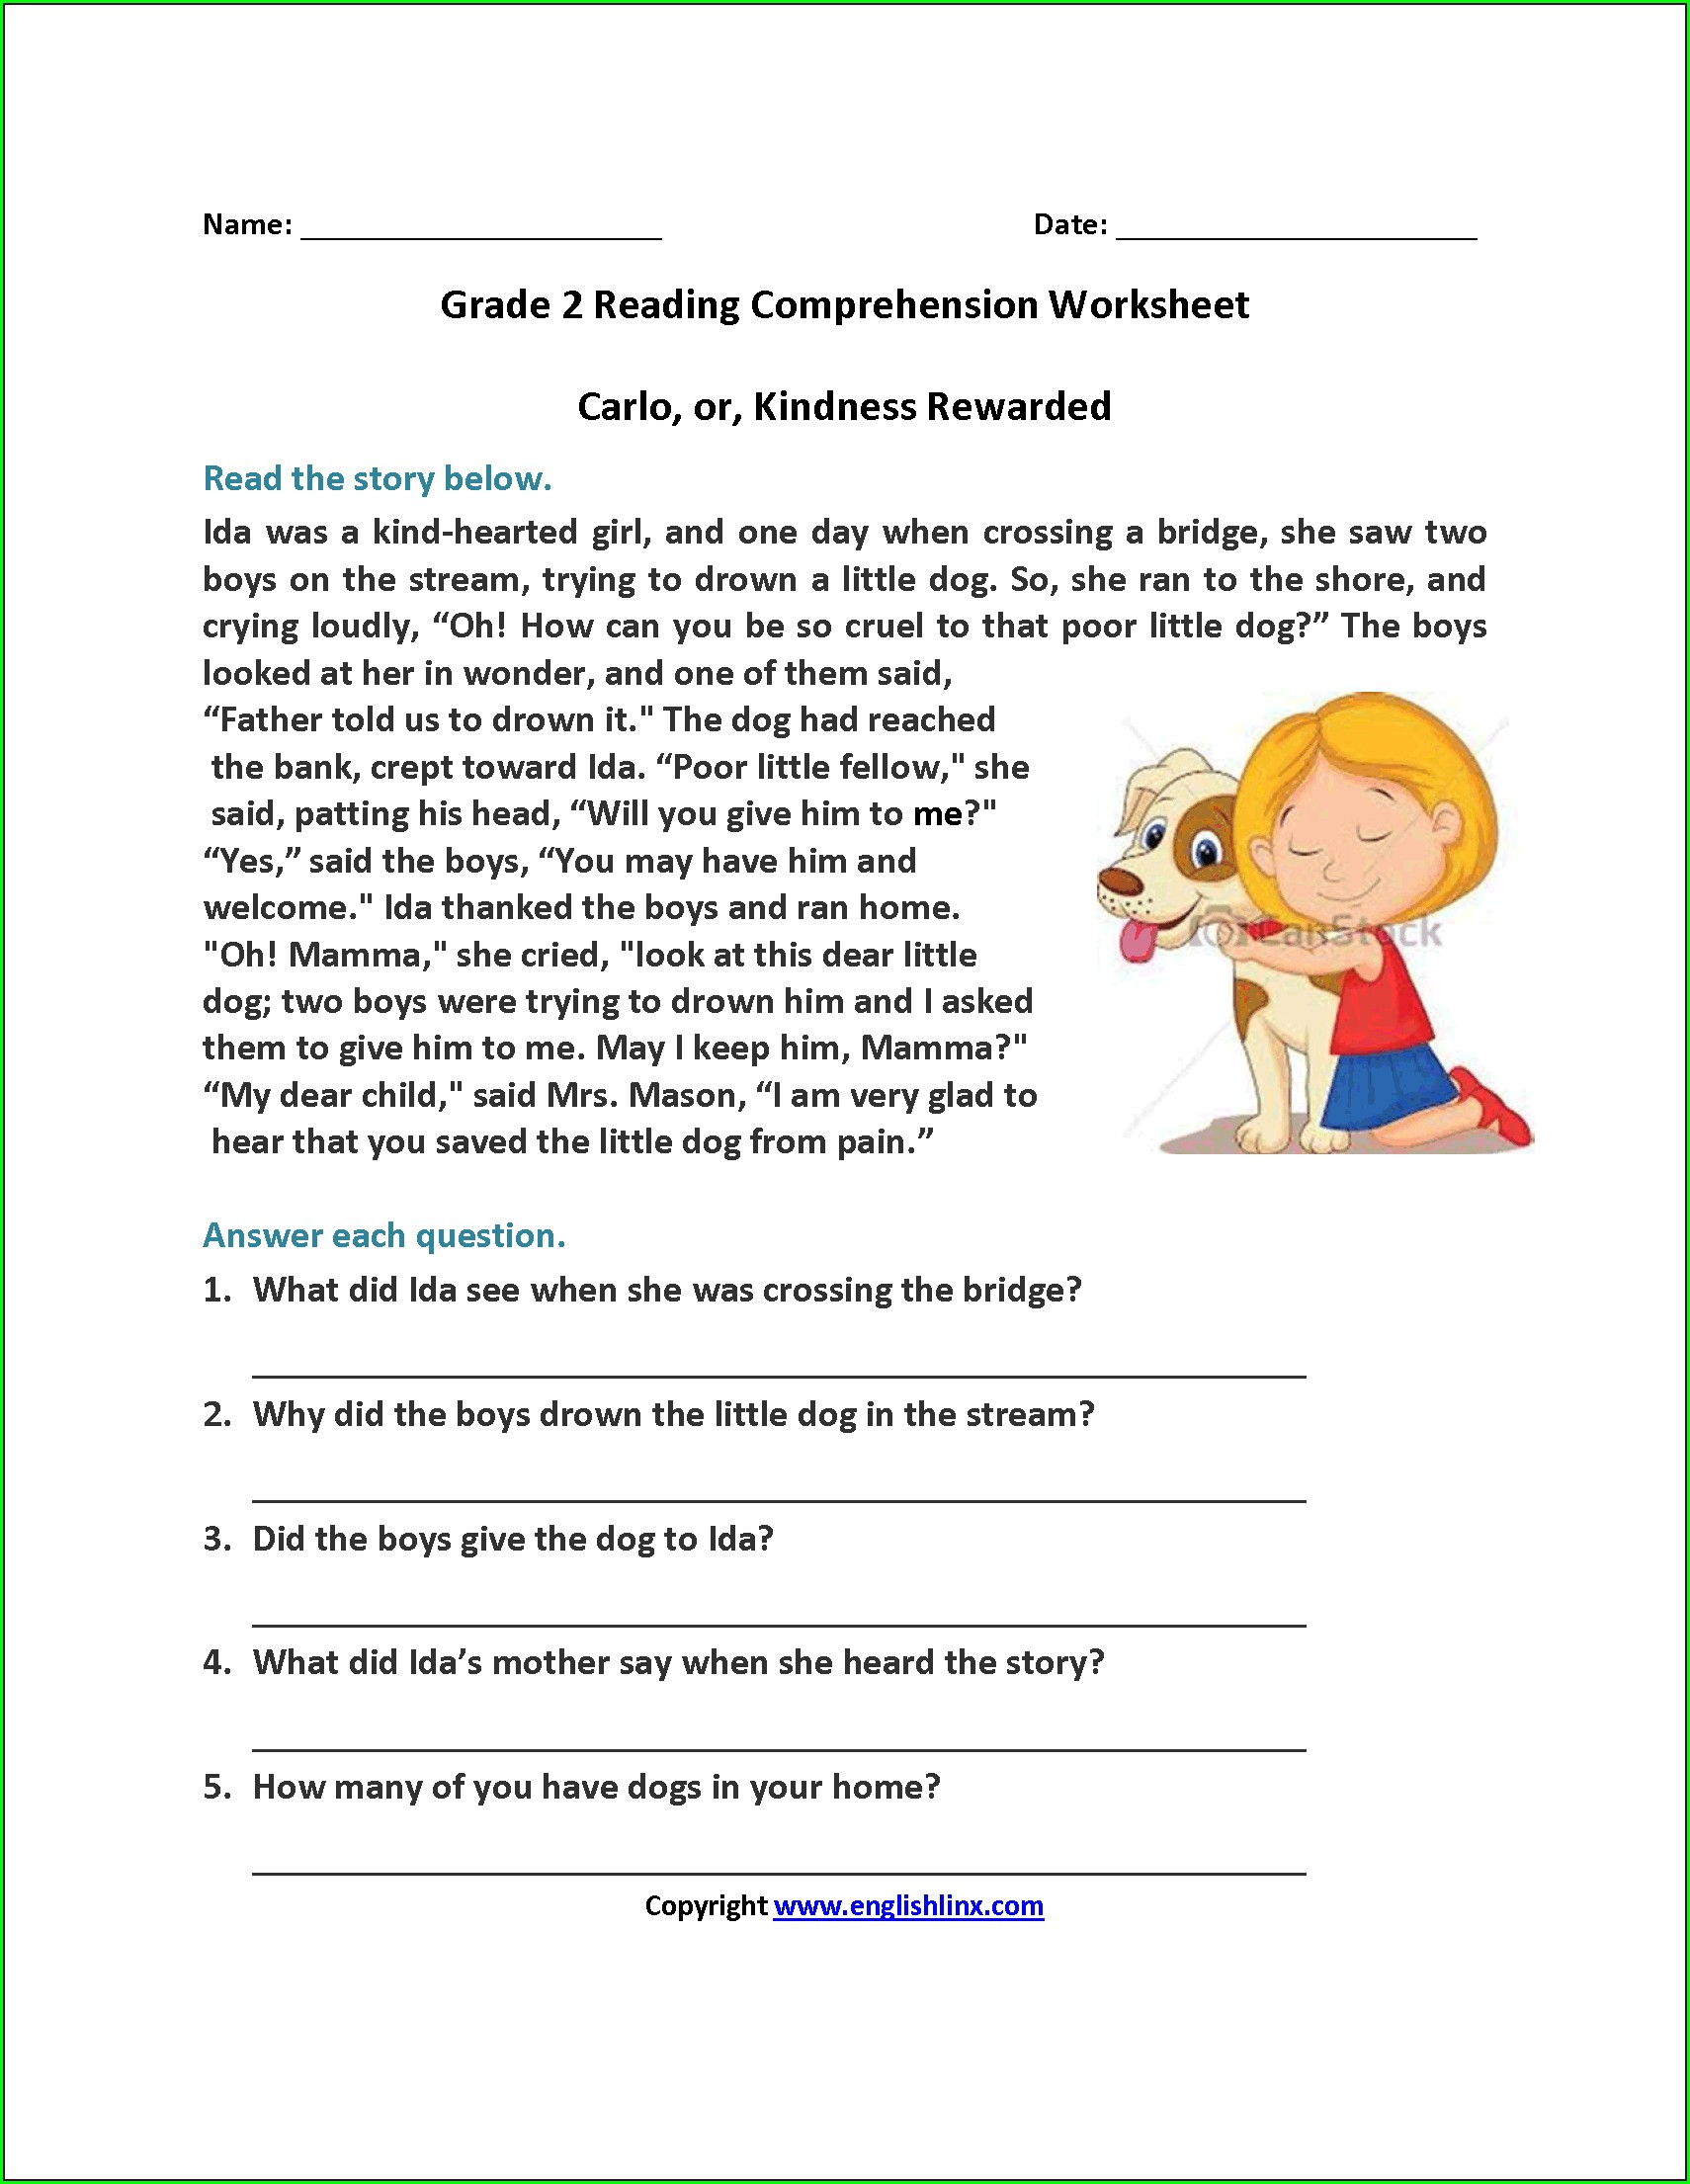 Free Printable Reading Comprehension Worksheets For Middle School